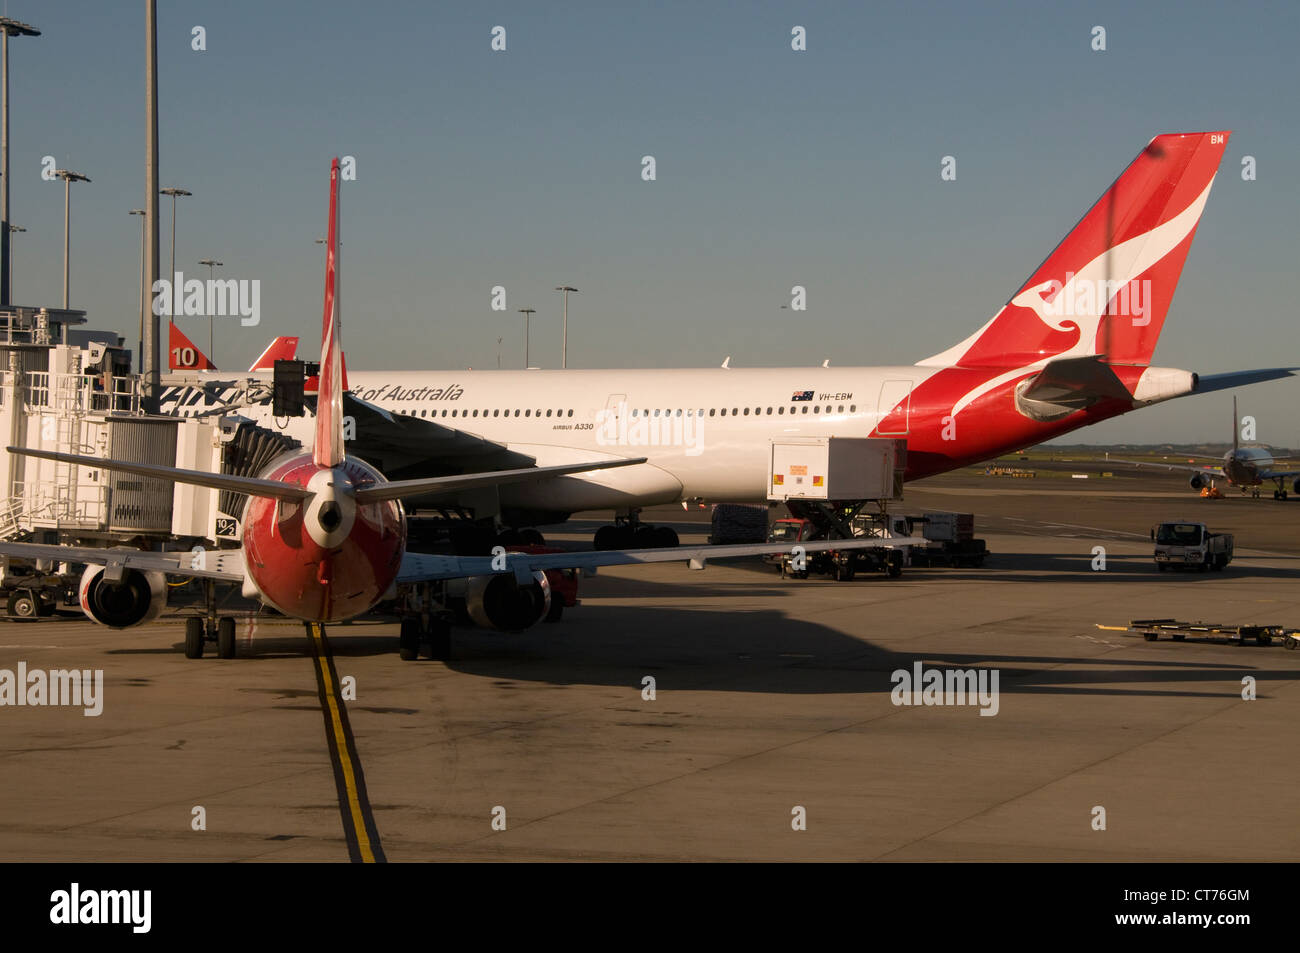 A Qantas Airbus at the domestic flight terminal at Sydney (Kingsford Smith) airport in Sydney in New South Wales, - Stock Image